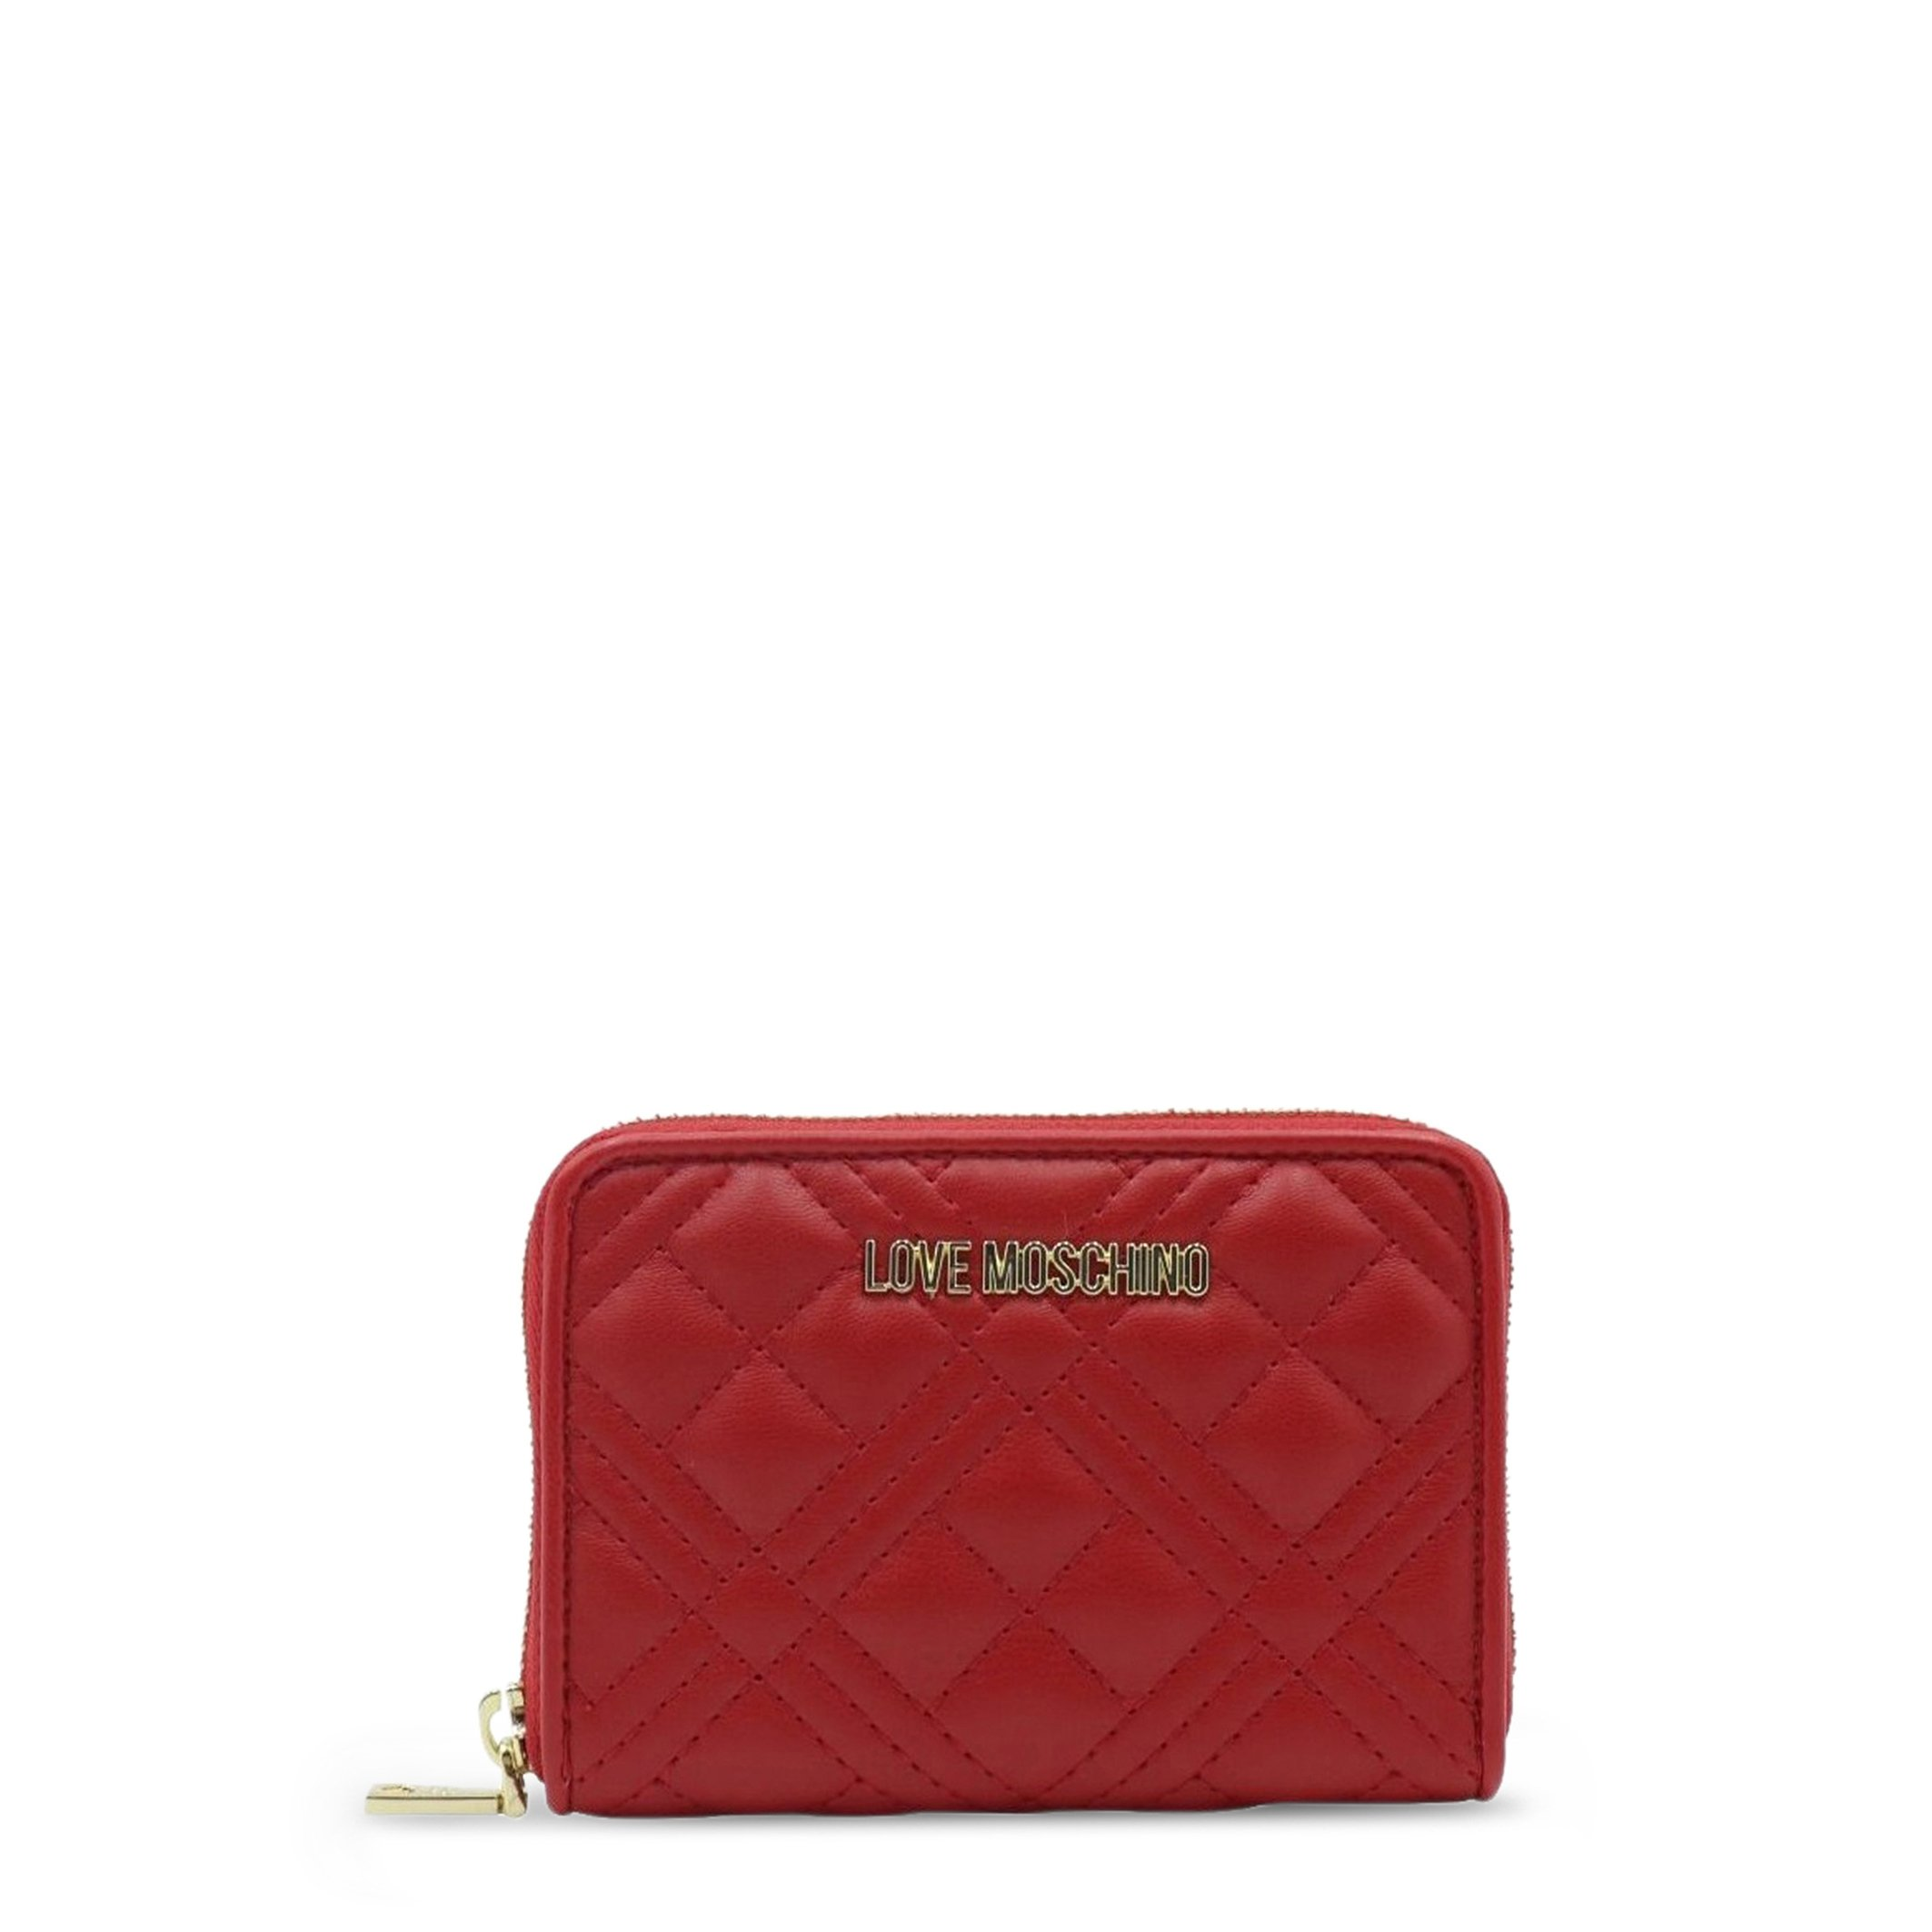 Love Moschino Women's Wallet Various Colours JC5629PP0CKA0 - red NOSIZE